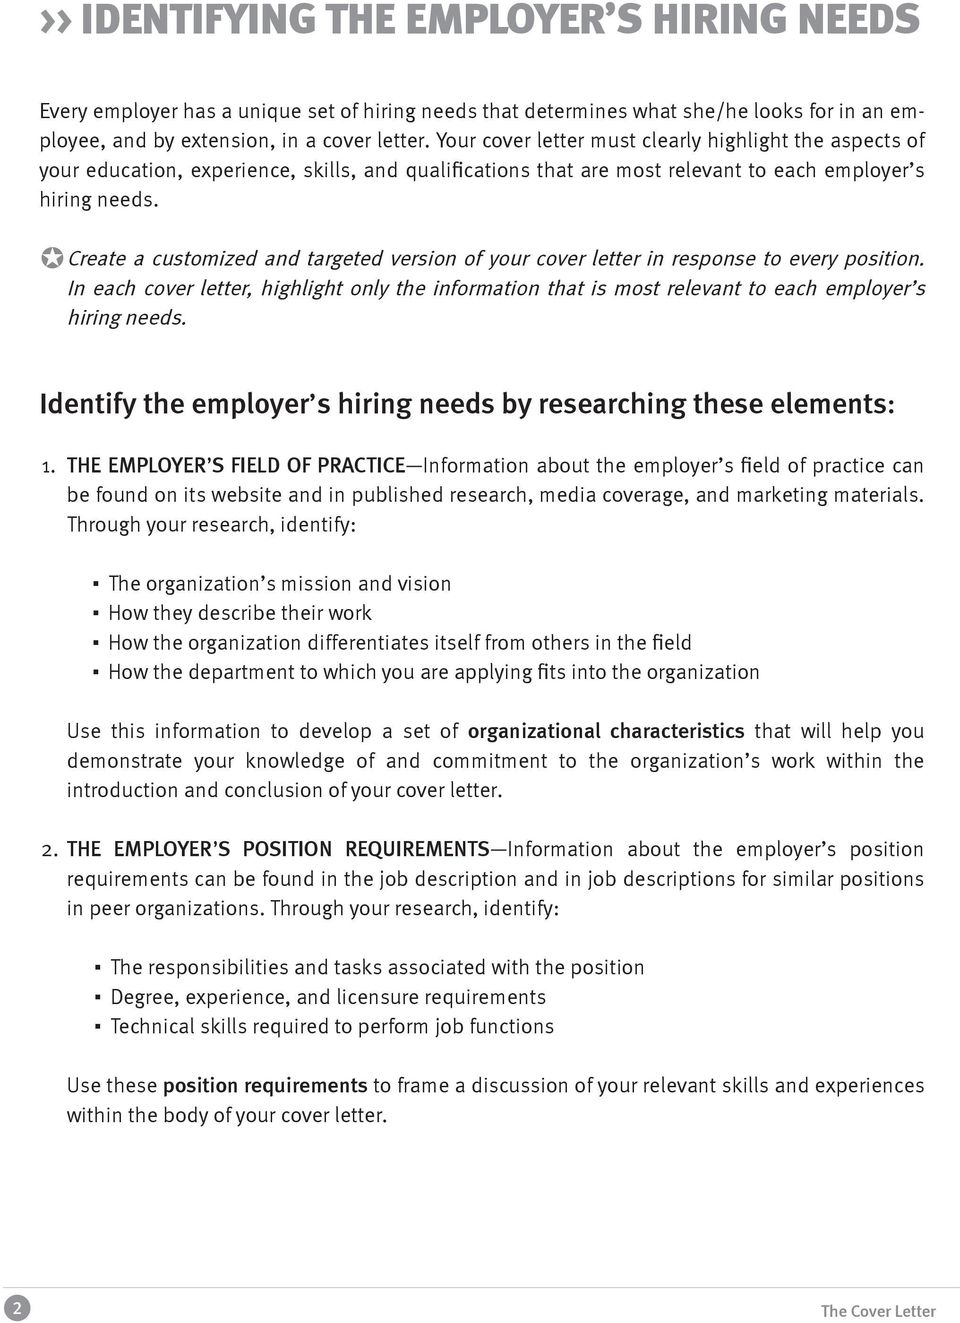 NYUWagner THE COVER LETTER OFFICE OF CAREER SERVICES - PDF